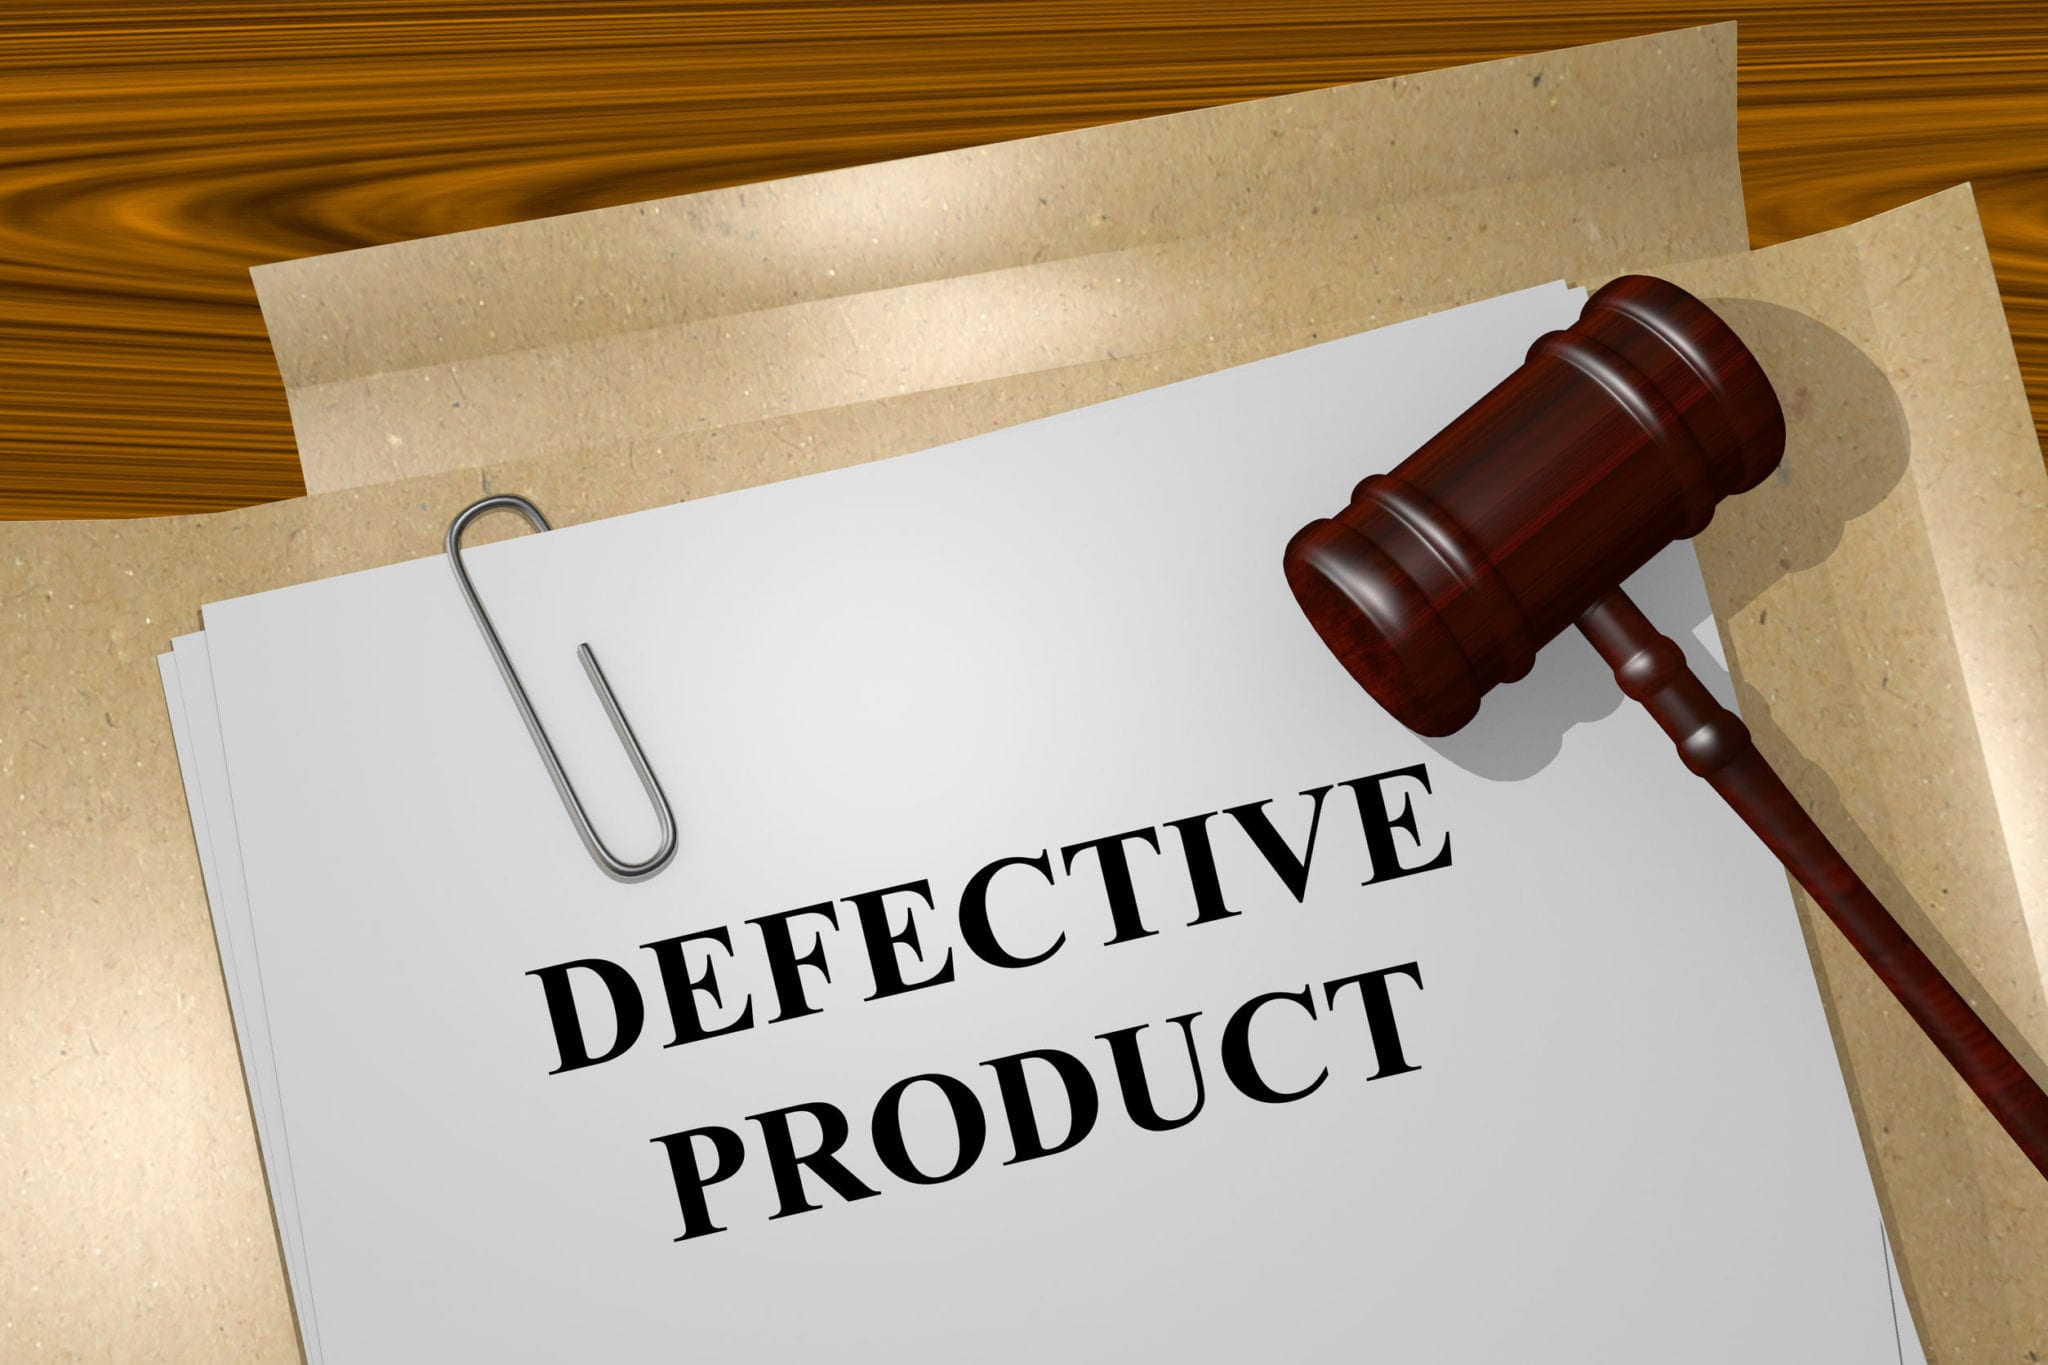 Types of Defective Product Lawsuits Recognized under Texas Law